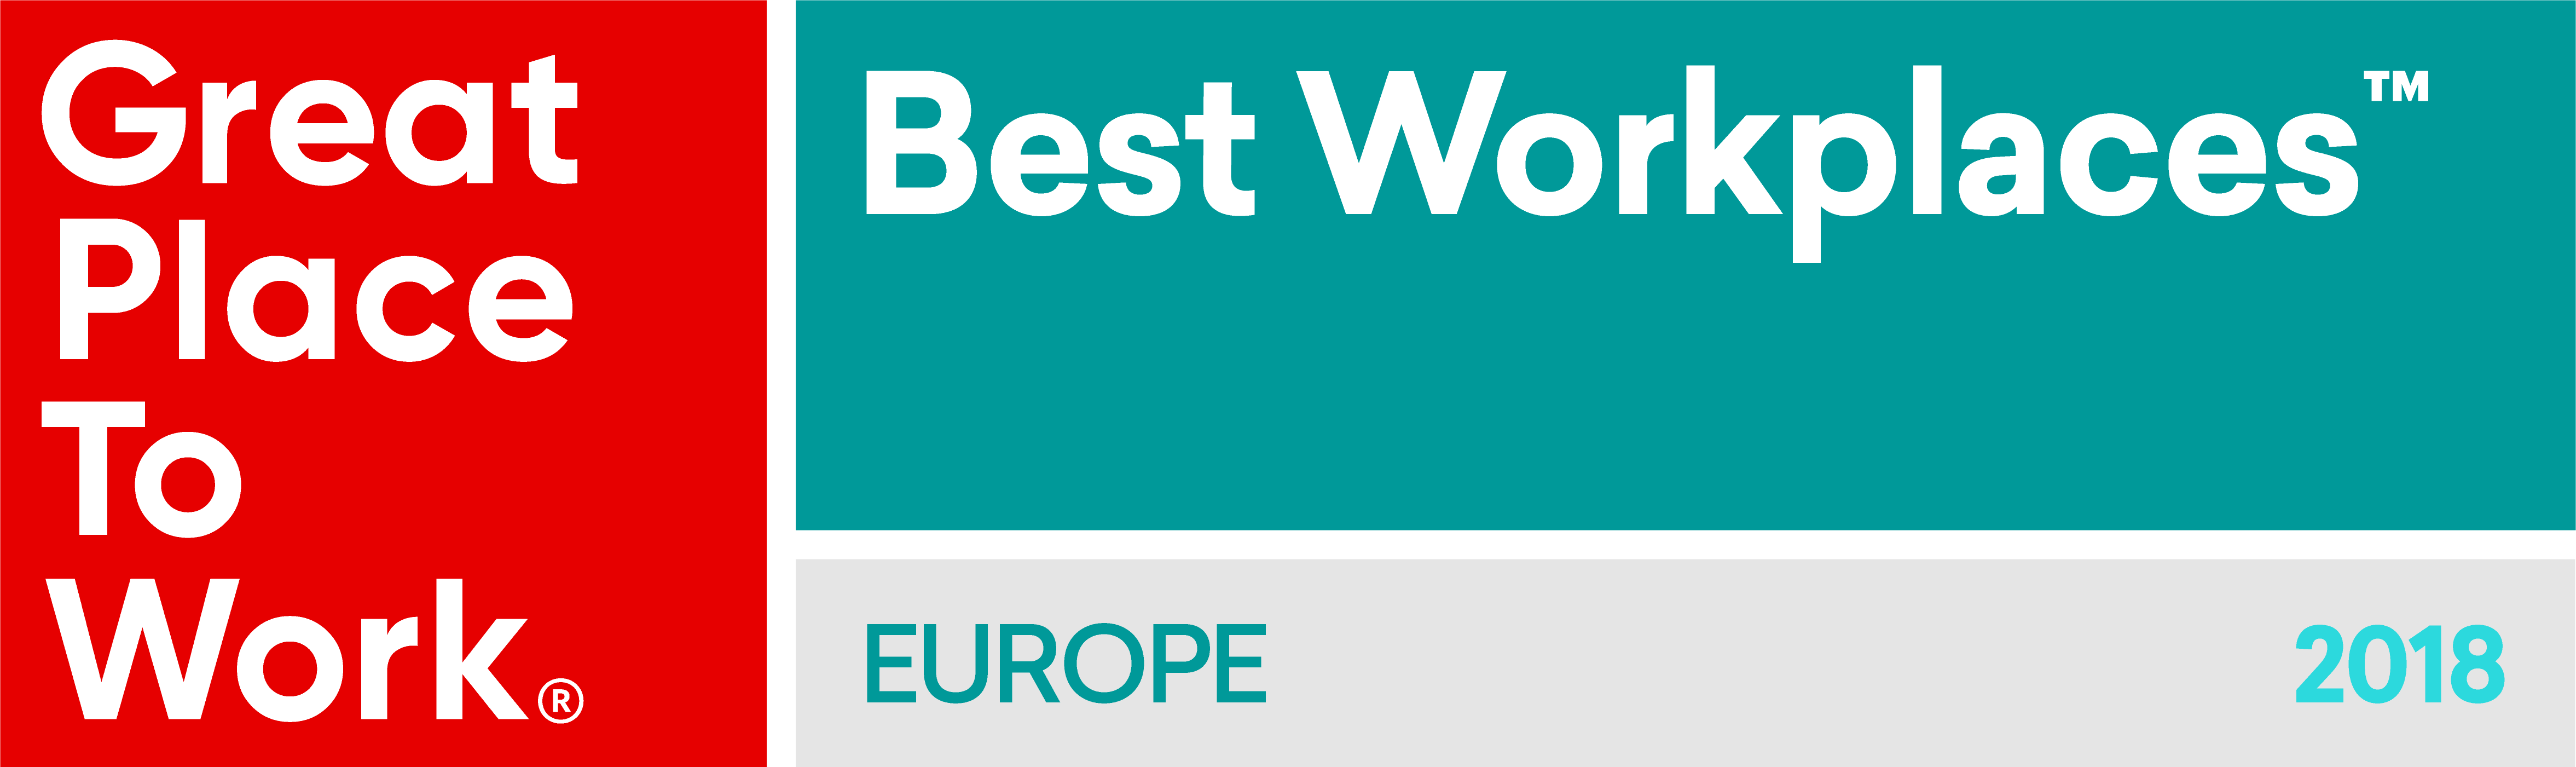 How to Work in Europe